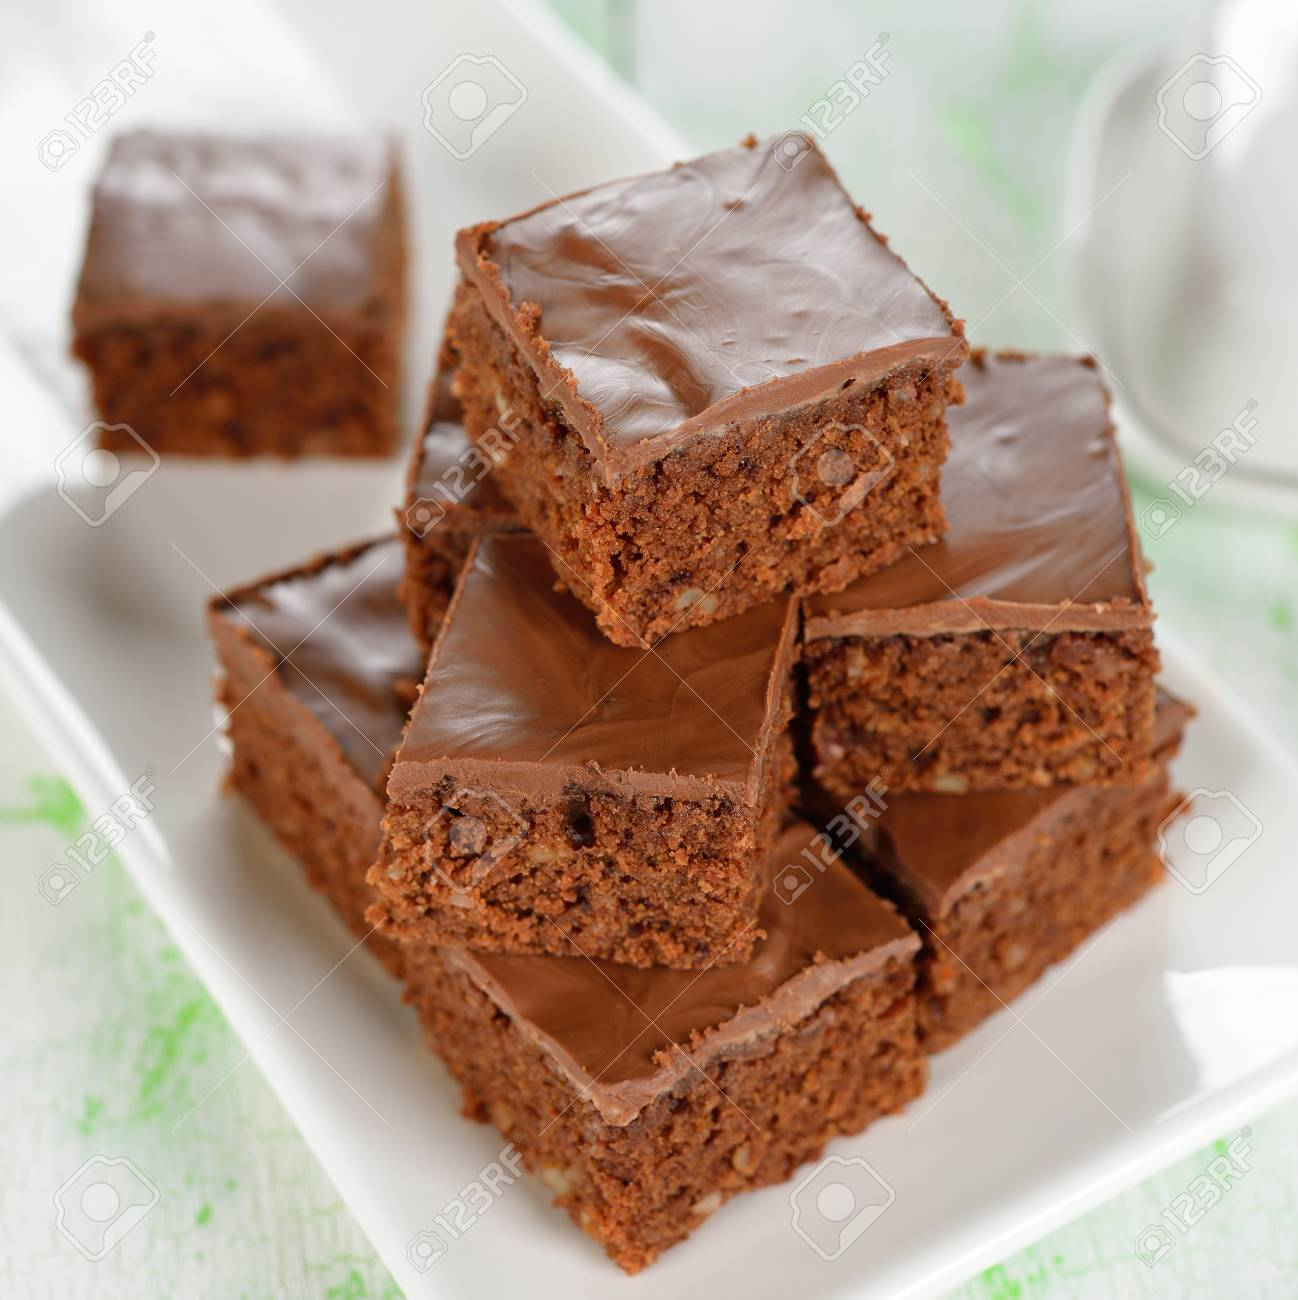 Chocolate brownies closeup on a white table Stock Photo - 19154689